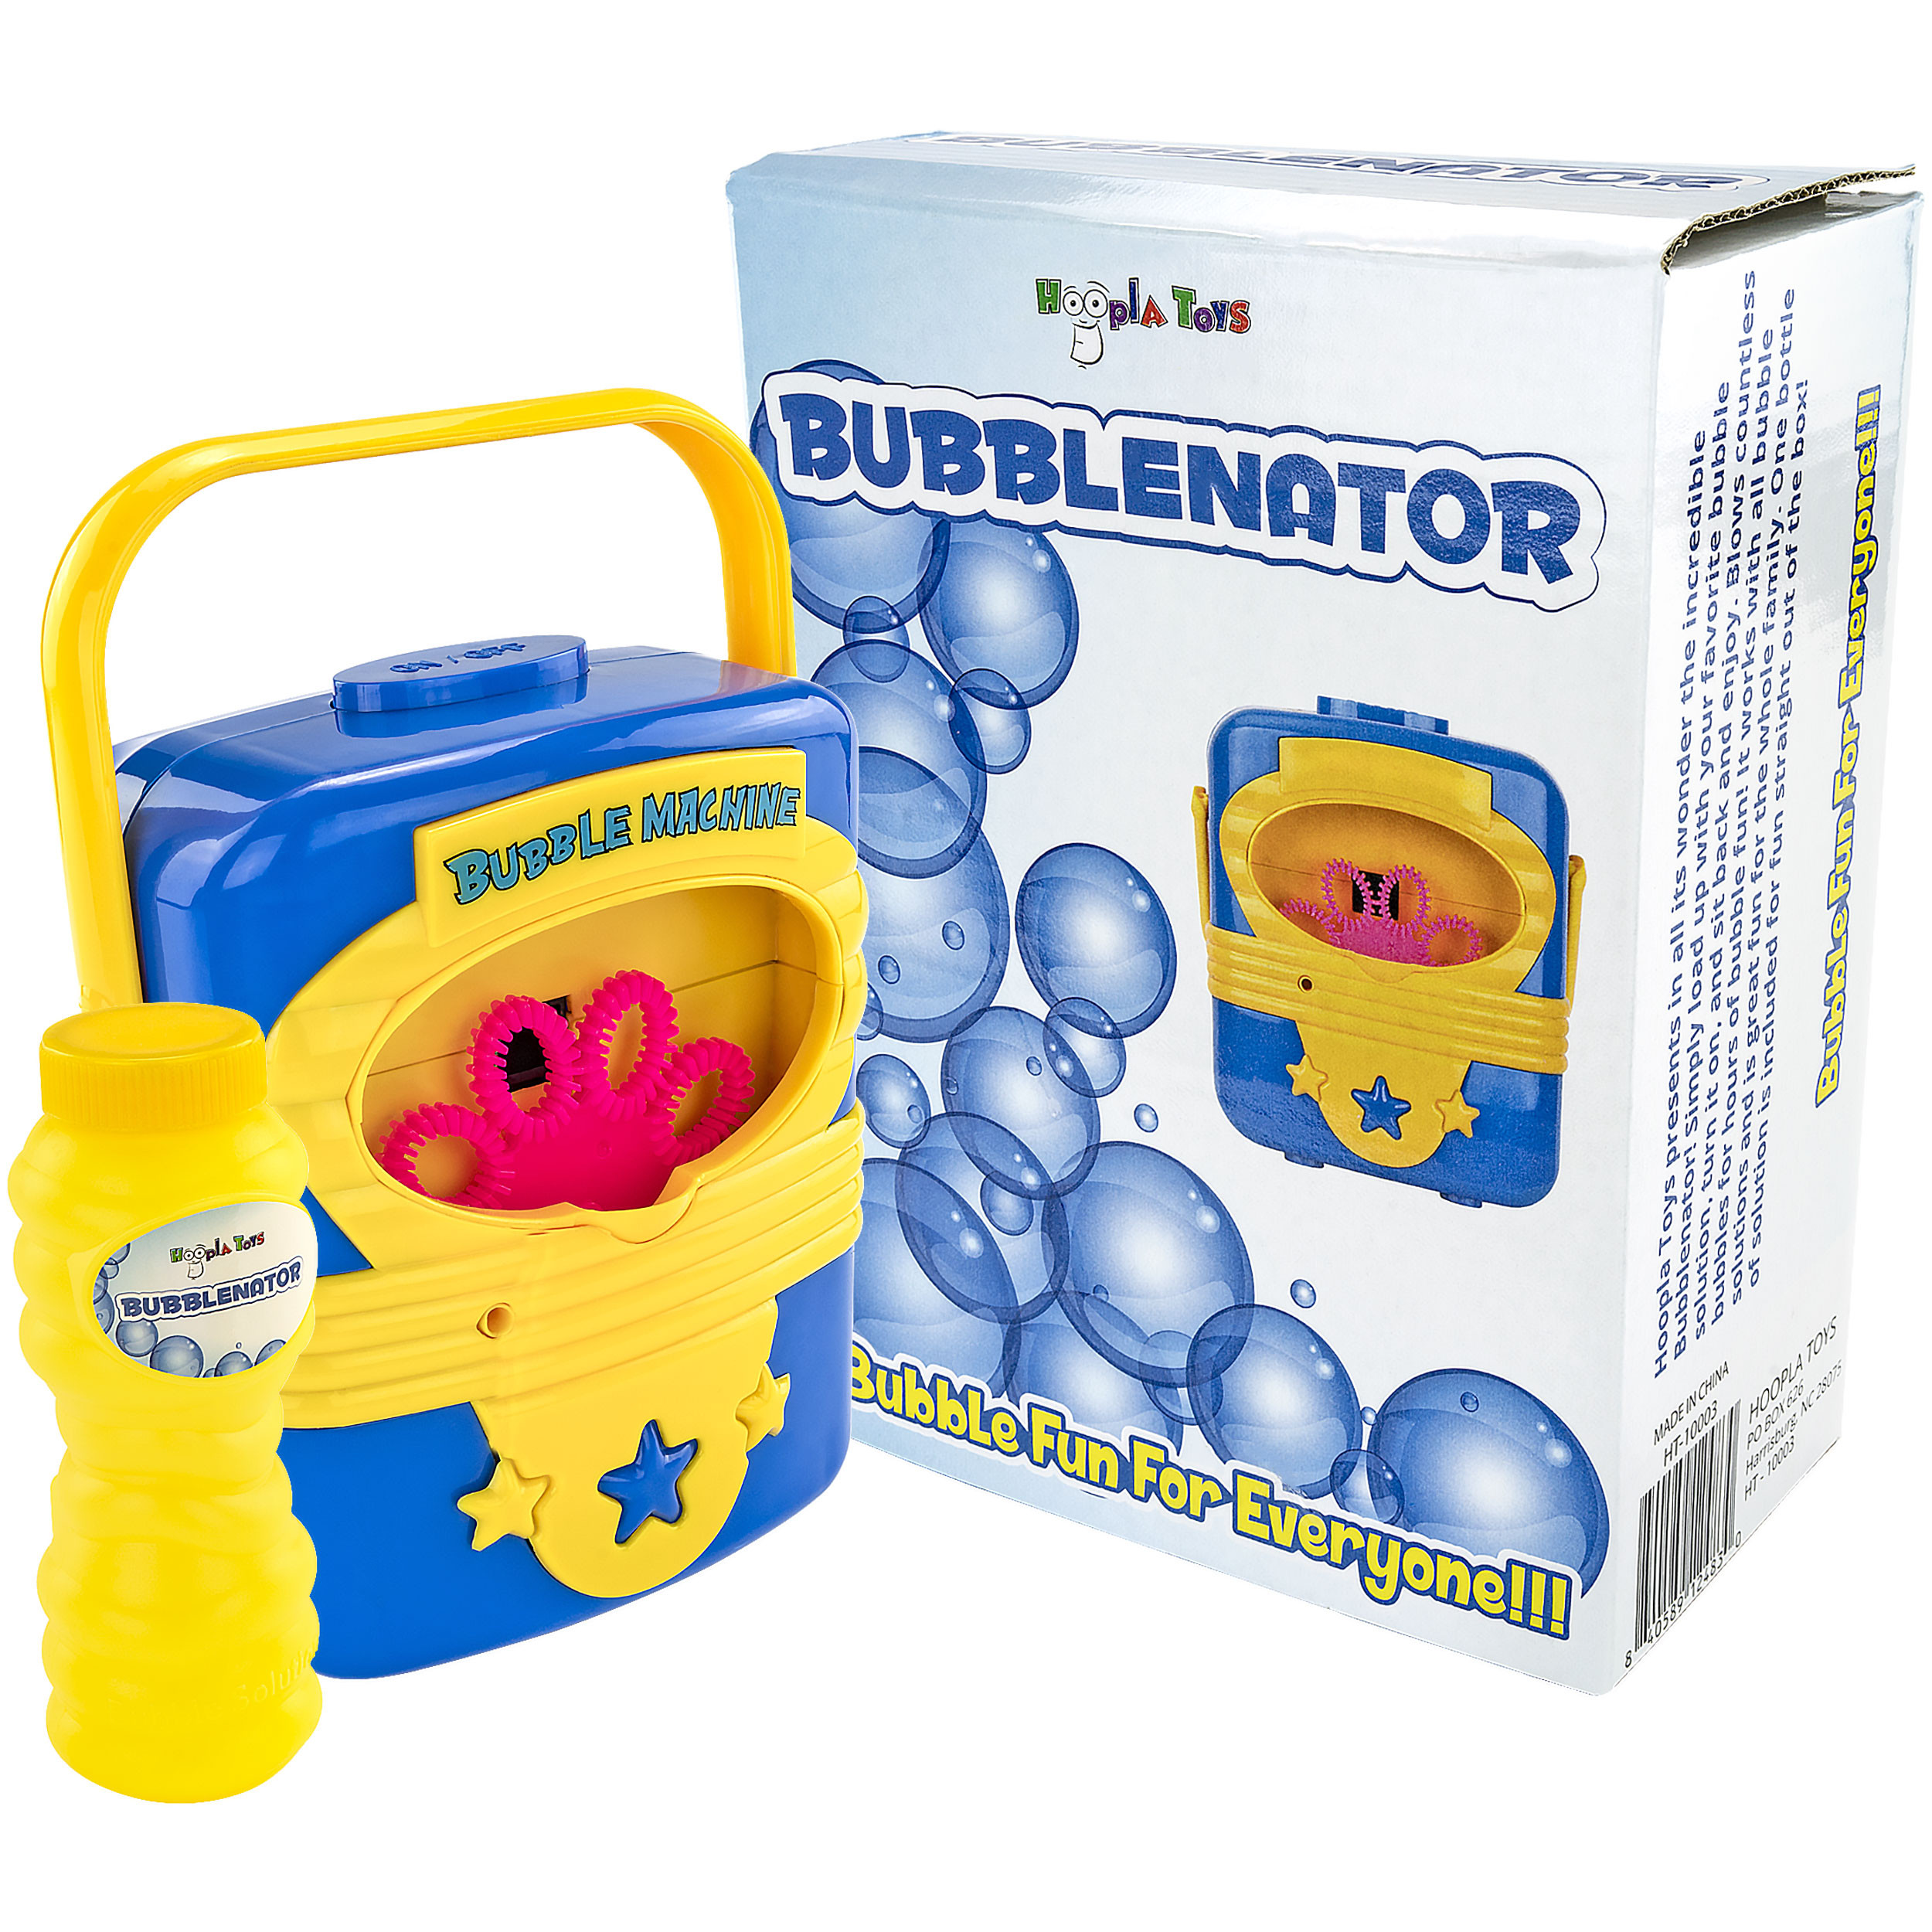 Bubblenator Bubble Blower